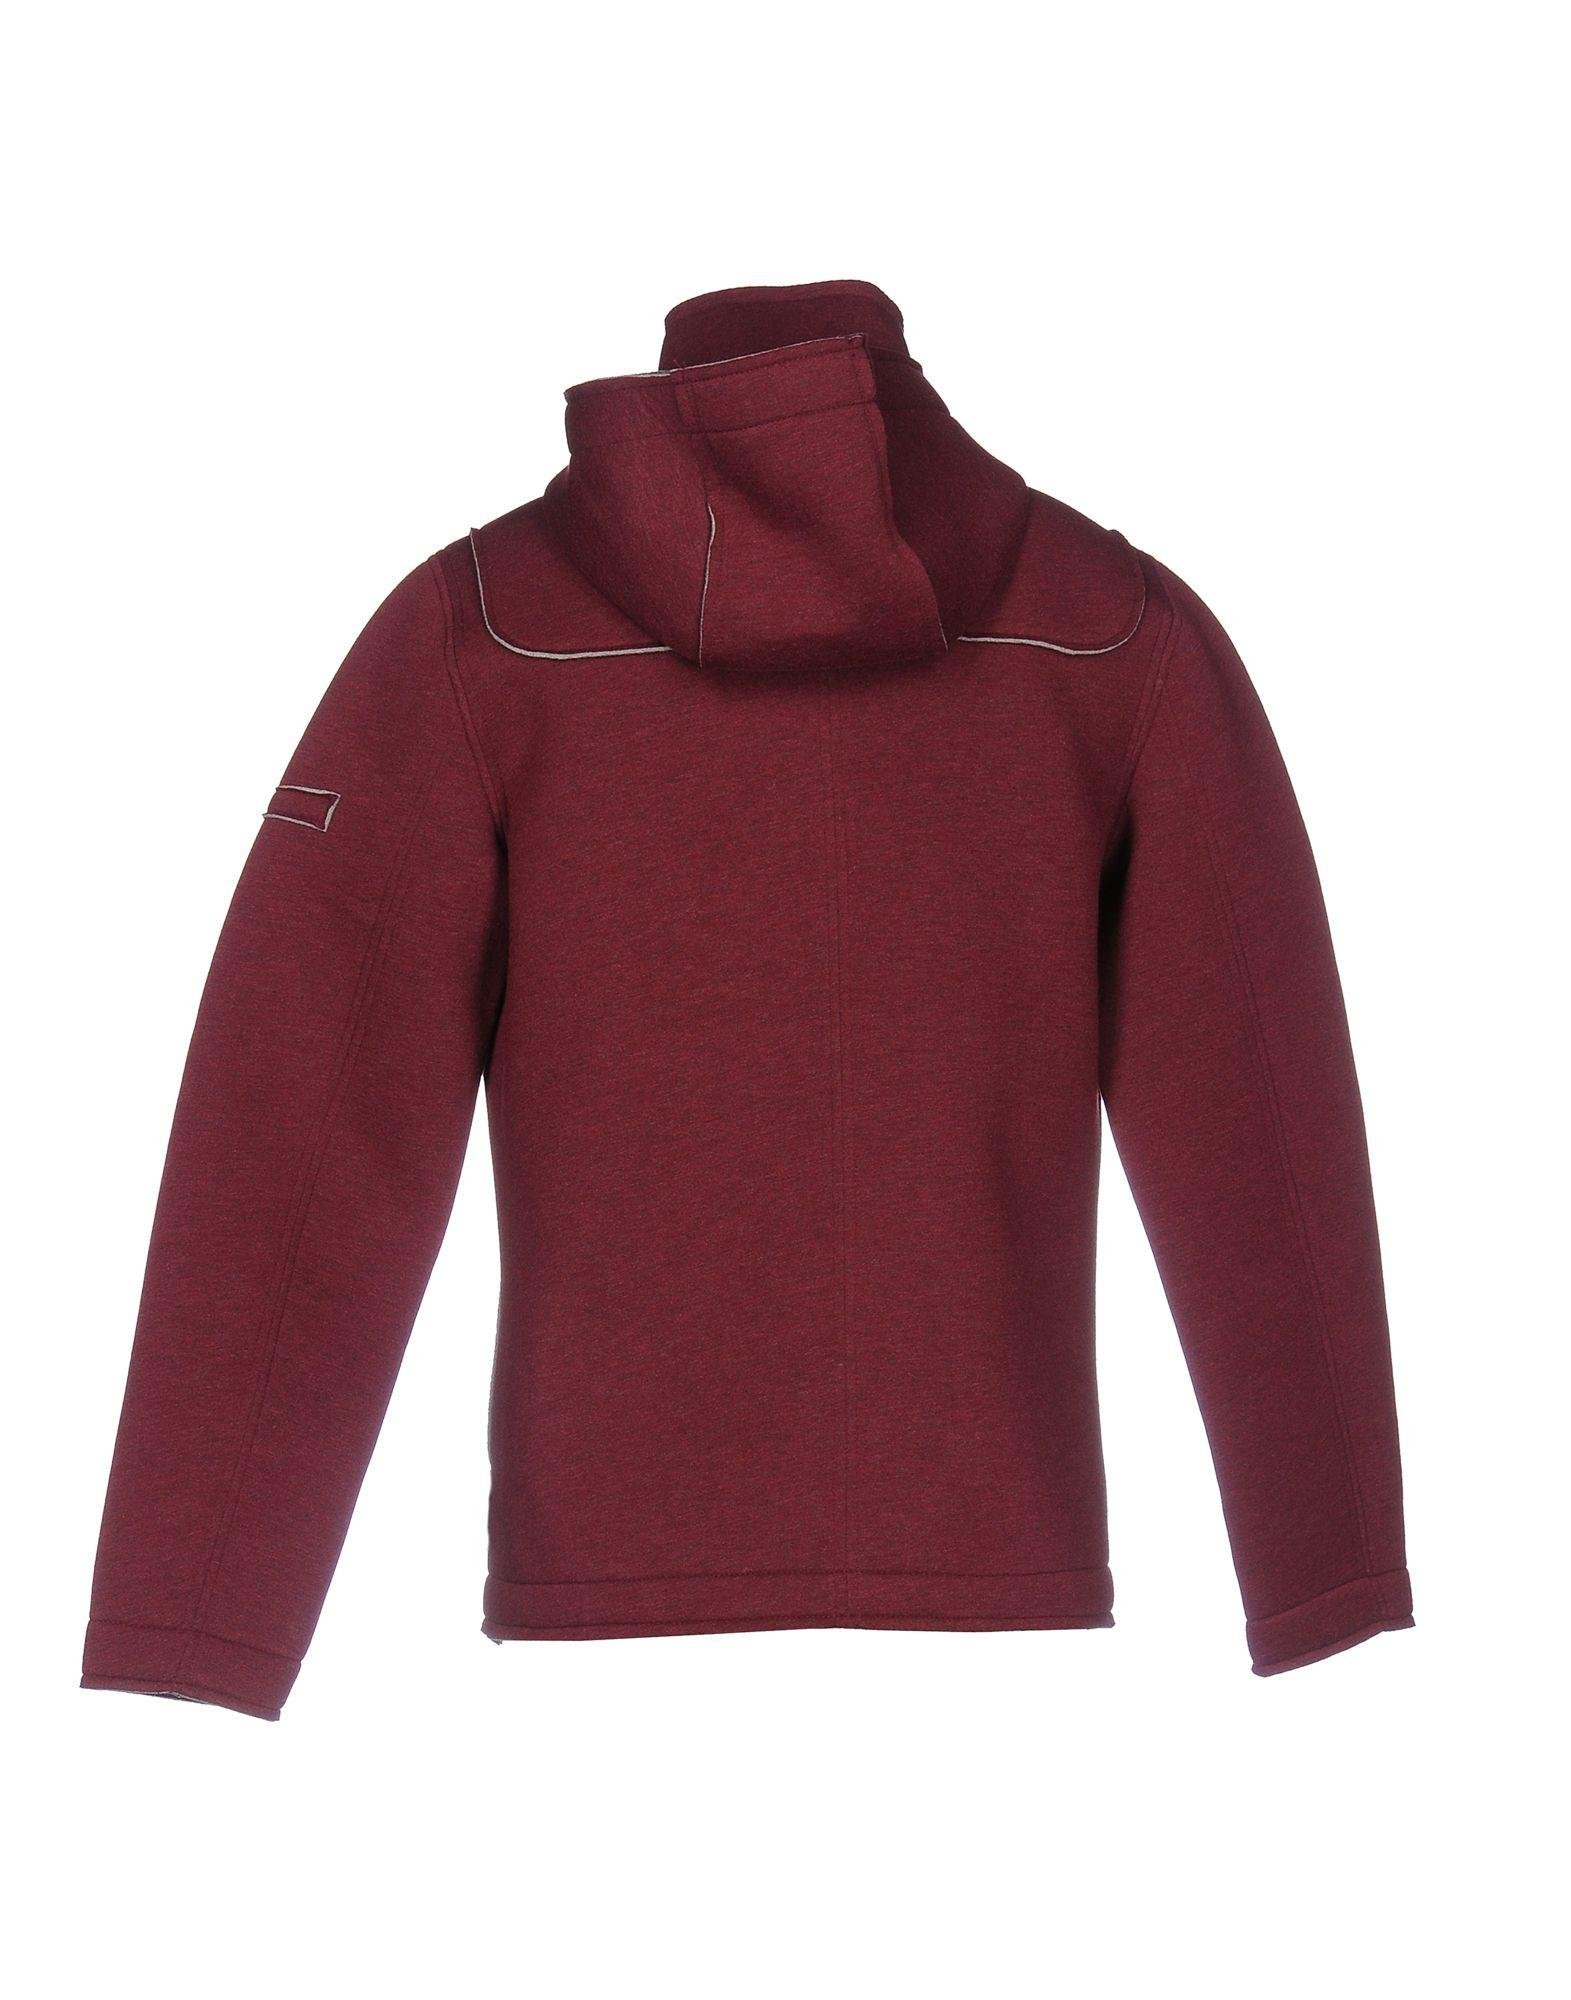 Gas Neoprene Jacket in Maroon (Red) for Men